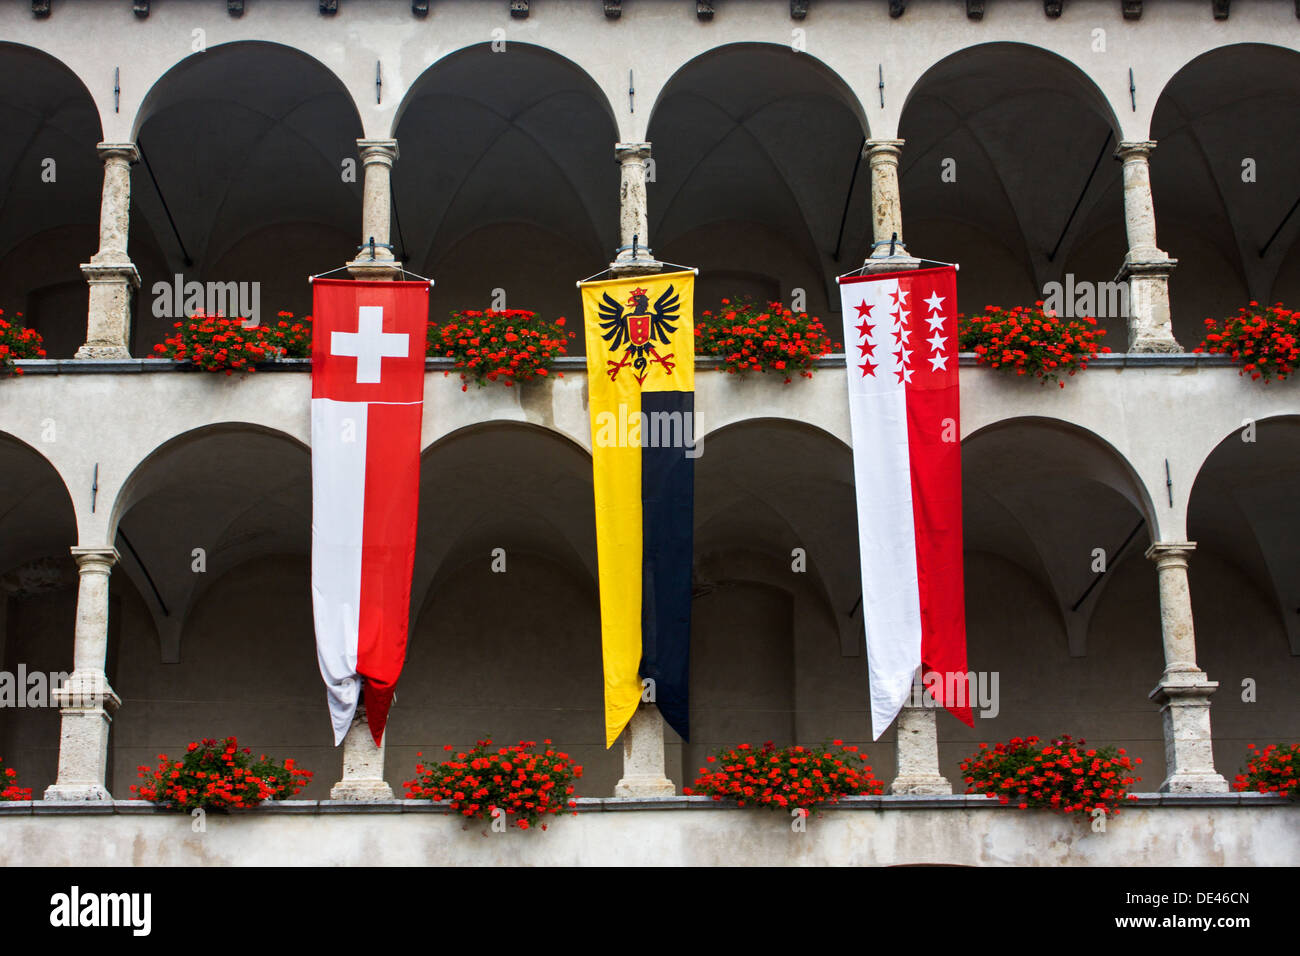 Three banners (one of Switzerland, one of Wallis and one of Brig) hanging from the balcony of a swiss palace - Stock Image